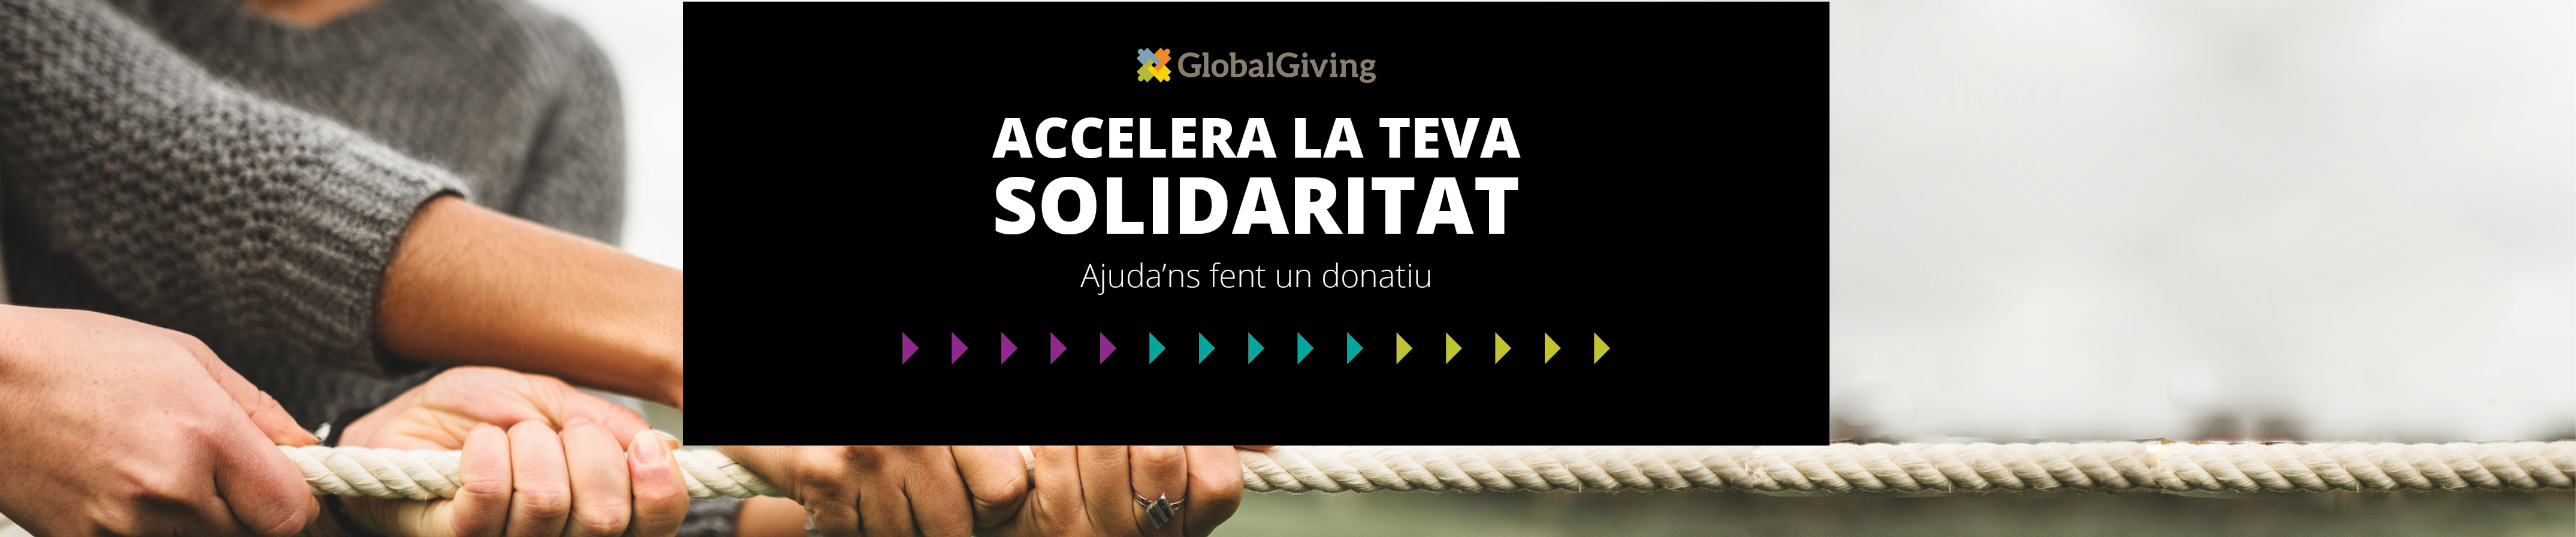 INSERsport - GlobalGiving